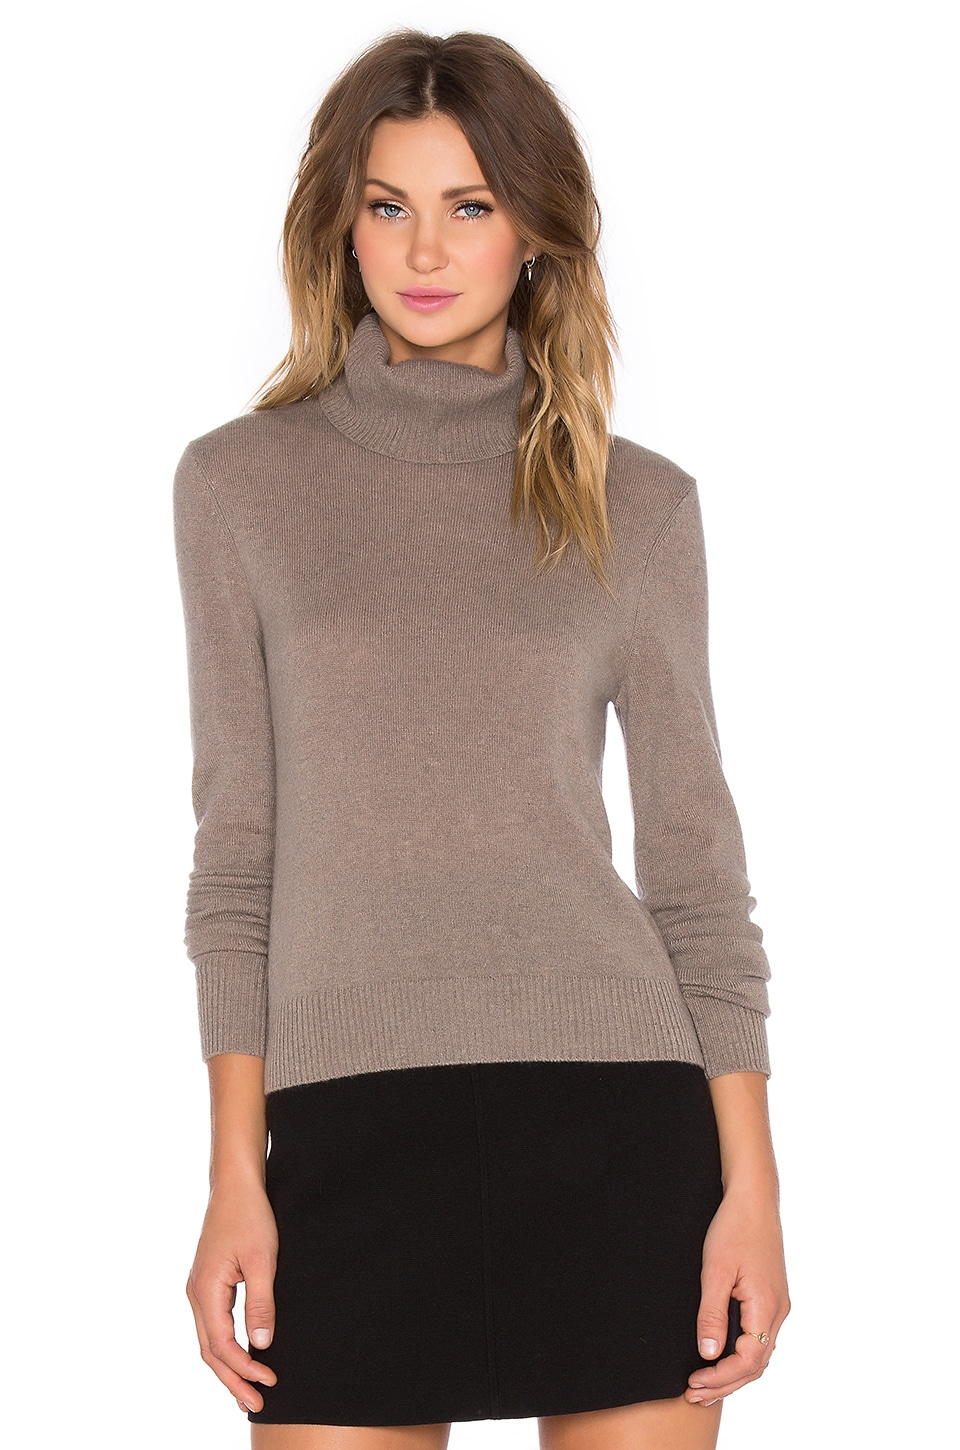 Equipment Atticus Cashmere Classics Turtleneck Sweater in Heather ...